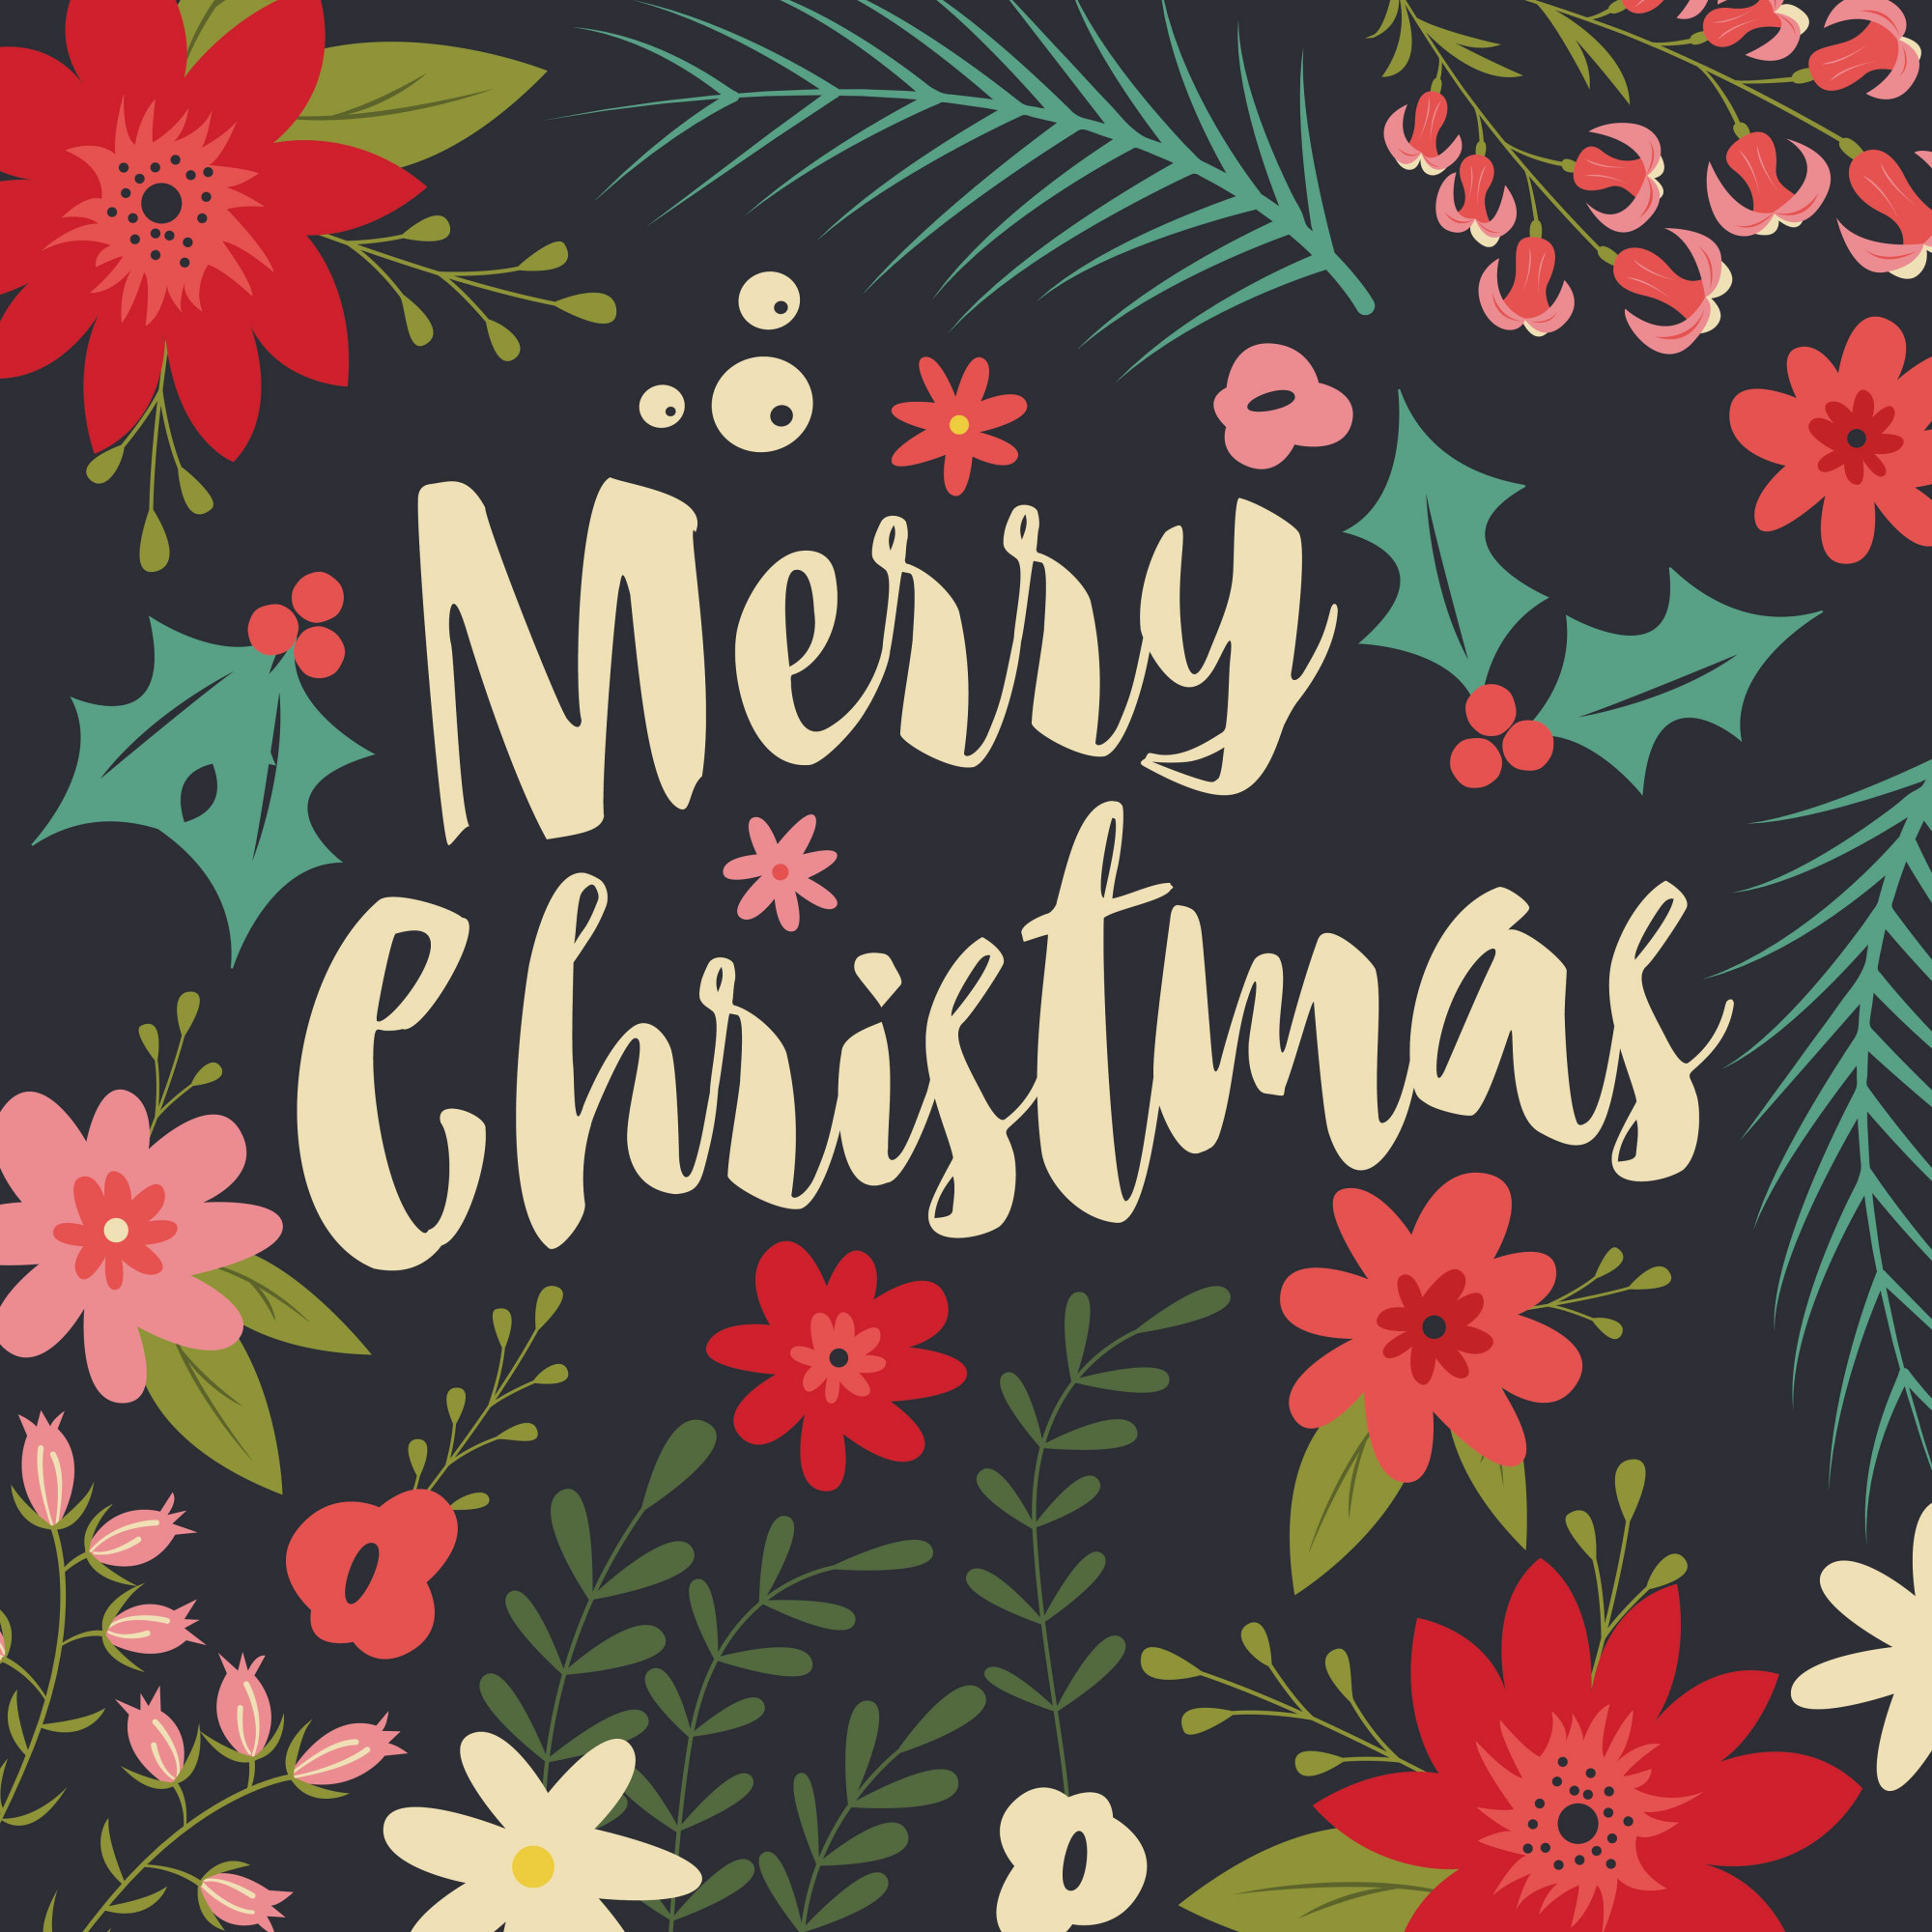 Typographic Merry Christmas card with decorative elements